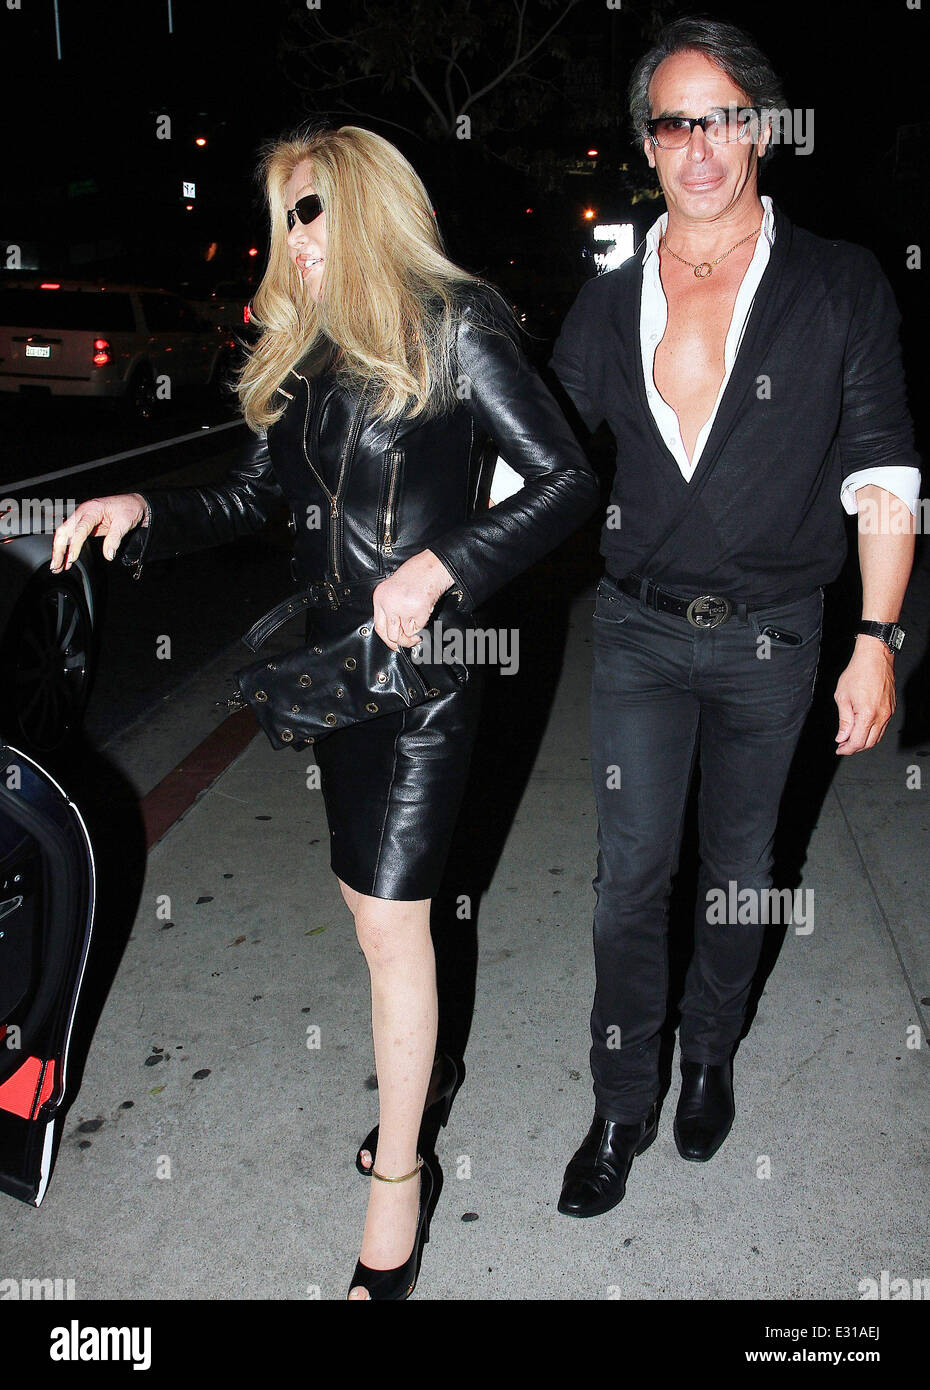 Jocelyn Wildenstein and Lloyd Klein at Boa Steakhouse in West Hollywood  Featuring: Jocelyn Wildenstein and Lloyd Stock Photo